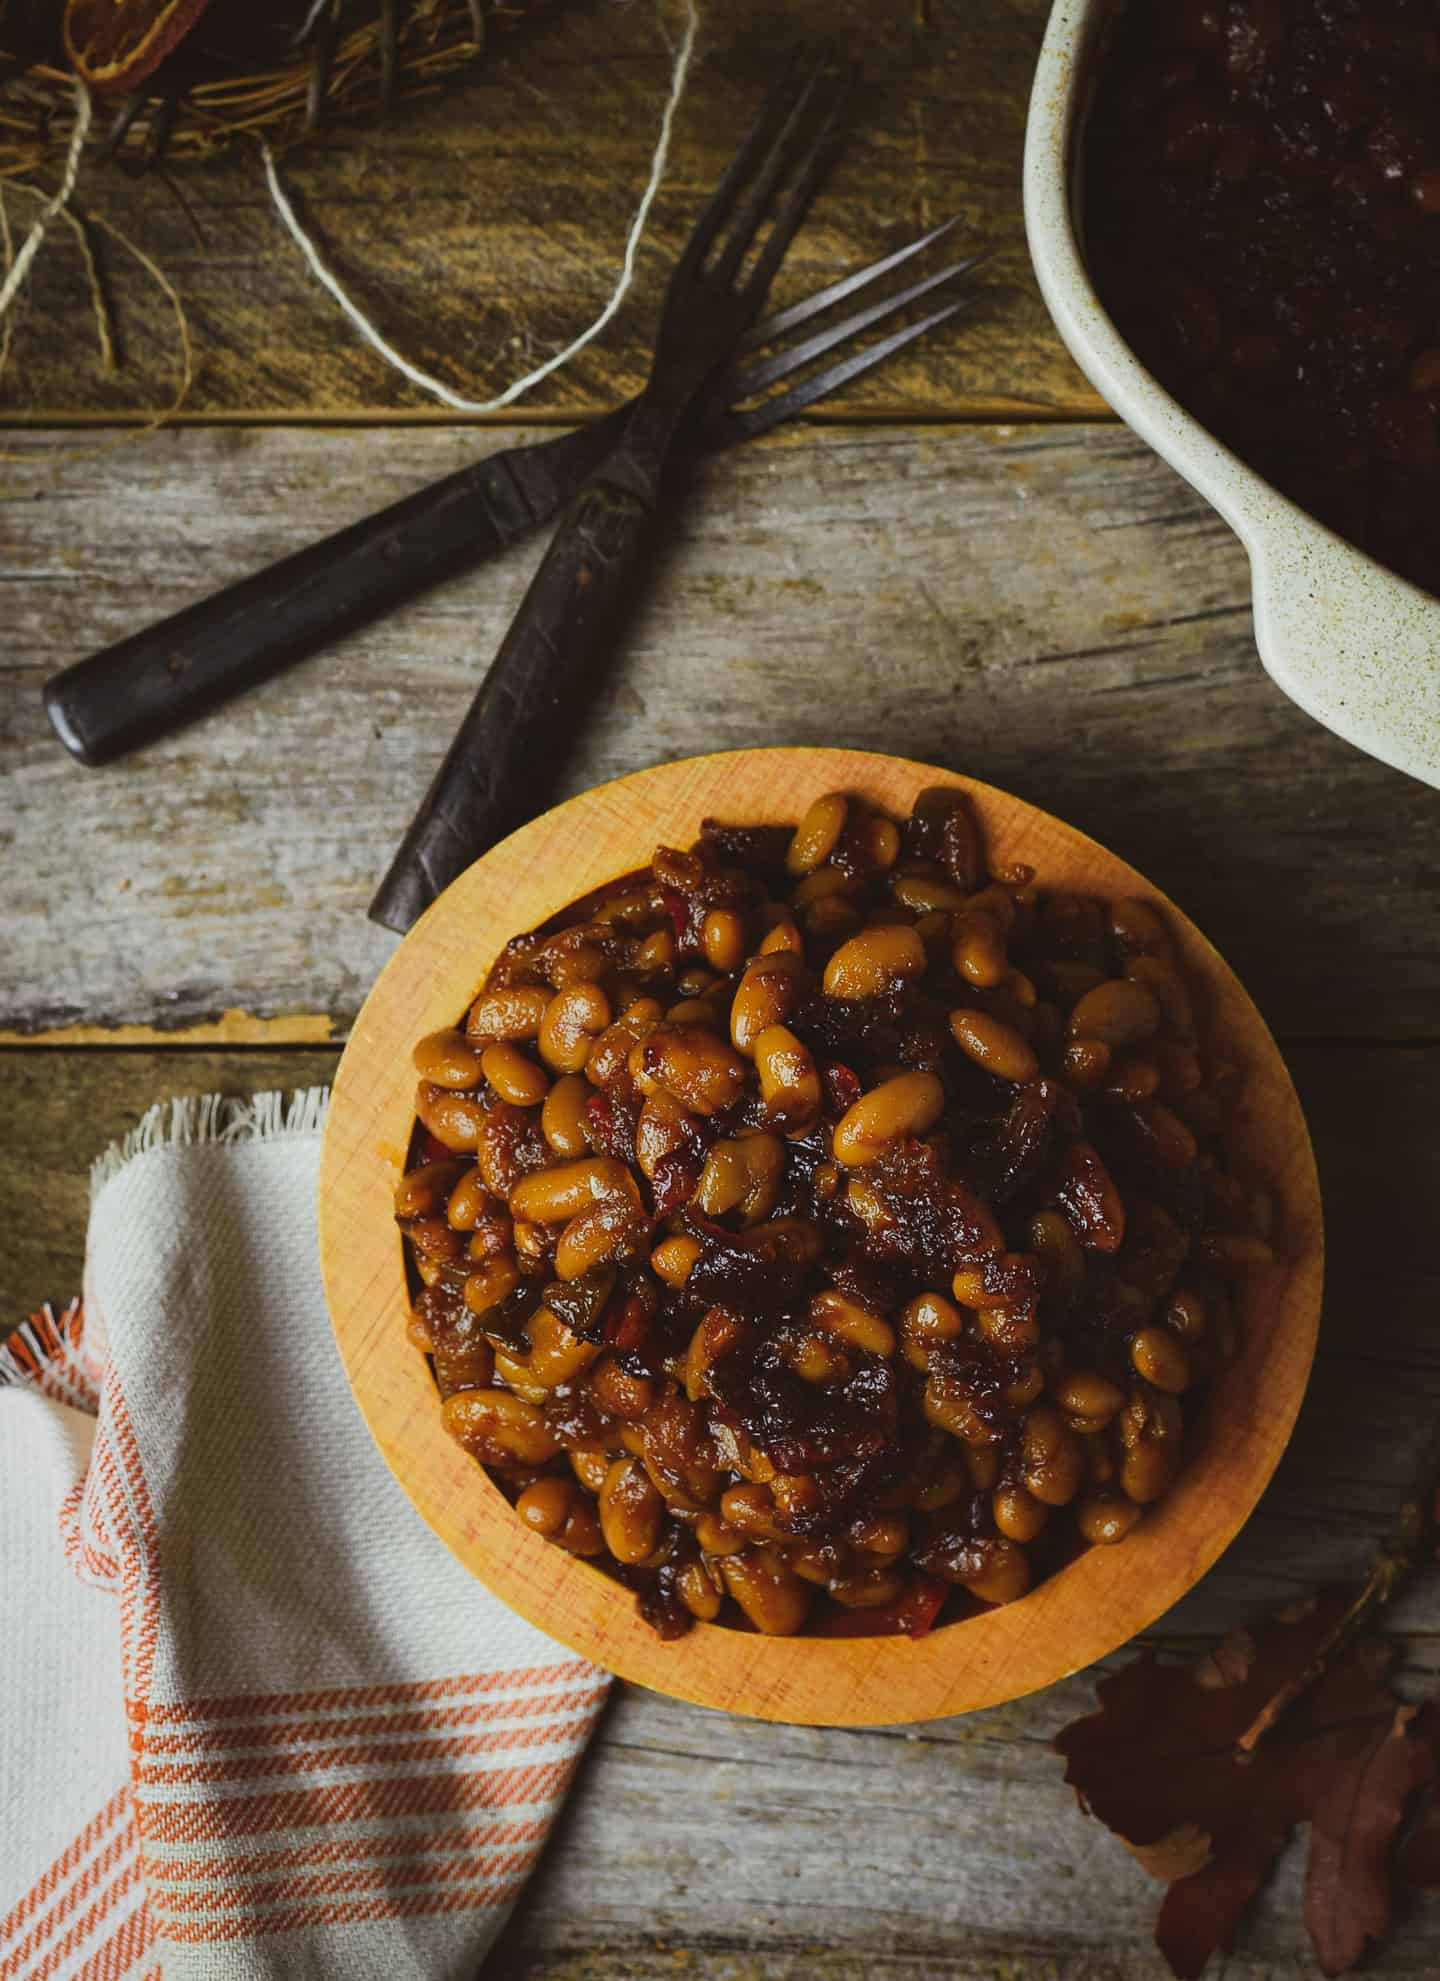 Bowl of baked beans.